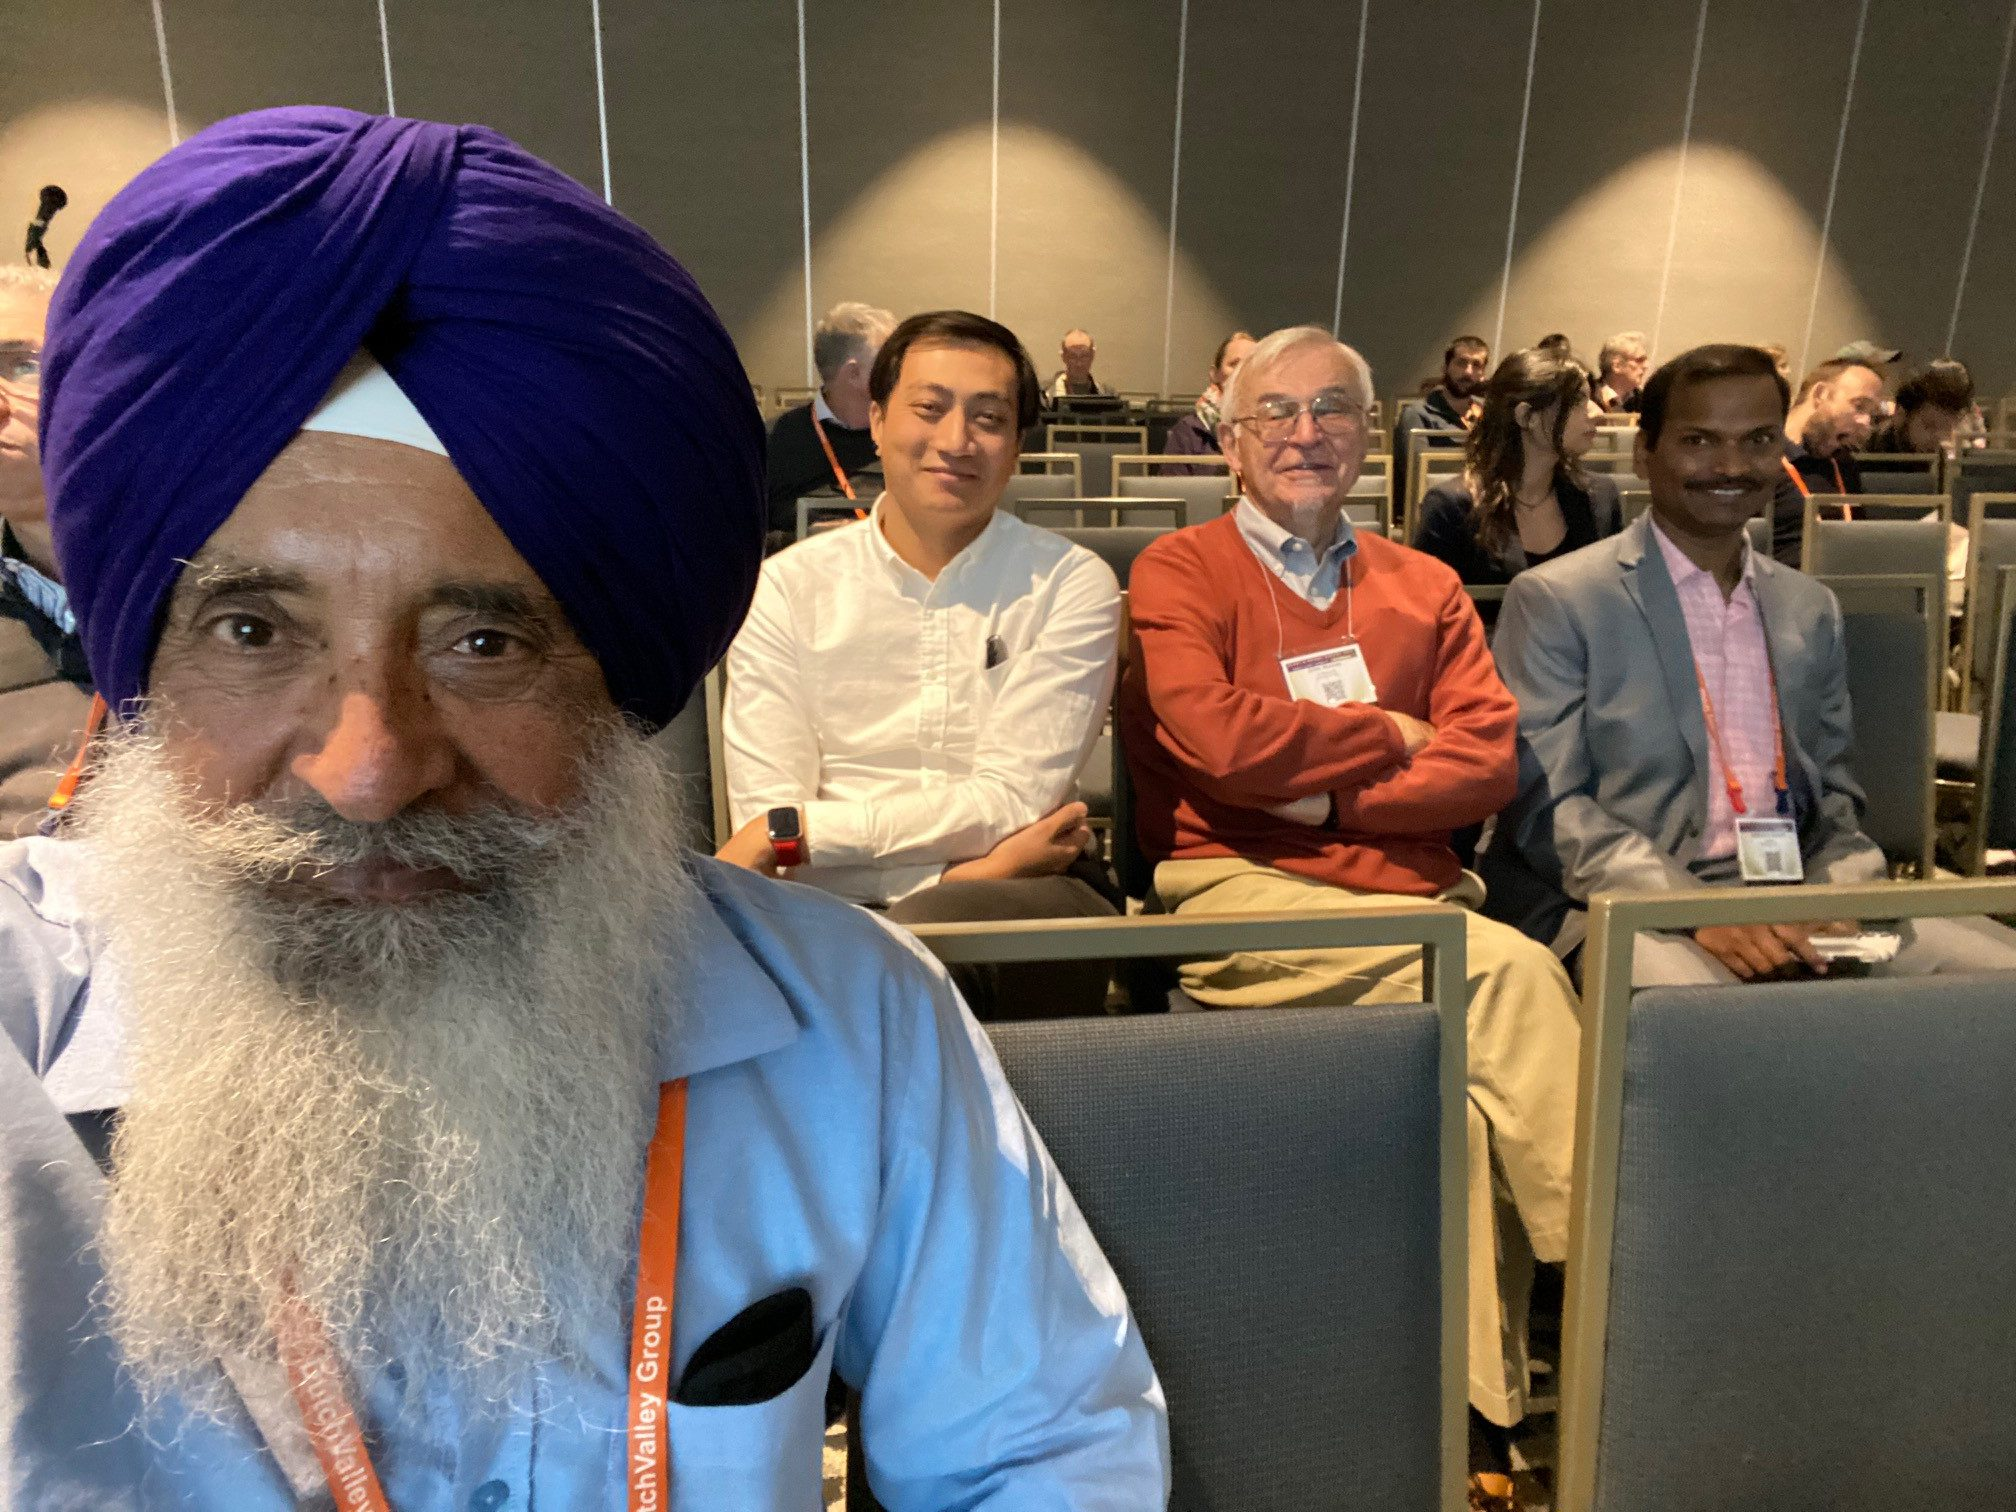 Kanwarpal Dhugga (left) takes a selfie with his colleagues in the background during the PAG conference. (Photo: Kanwarpal Dhugga/CIMMYT)